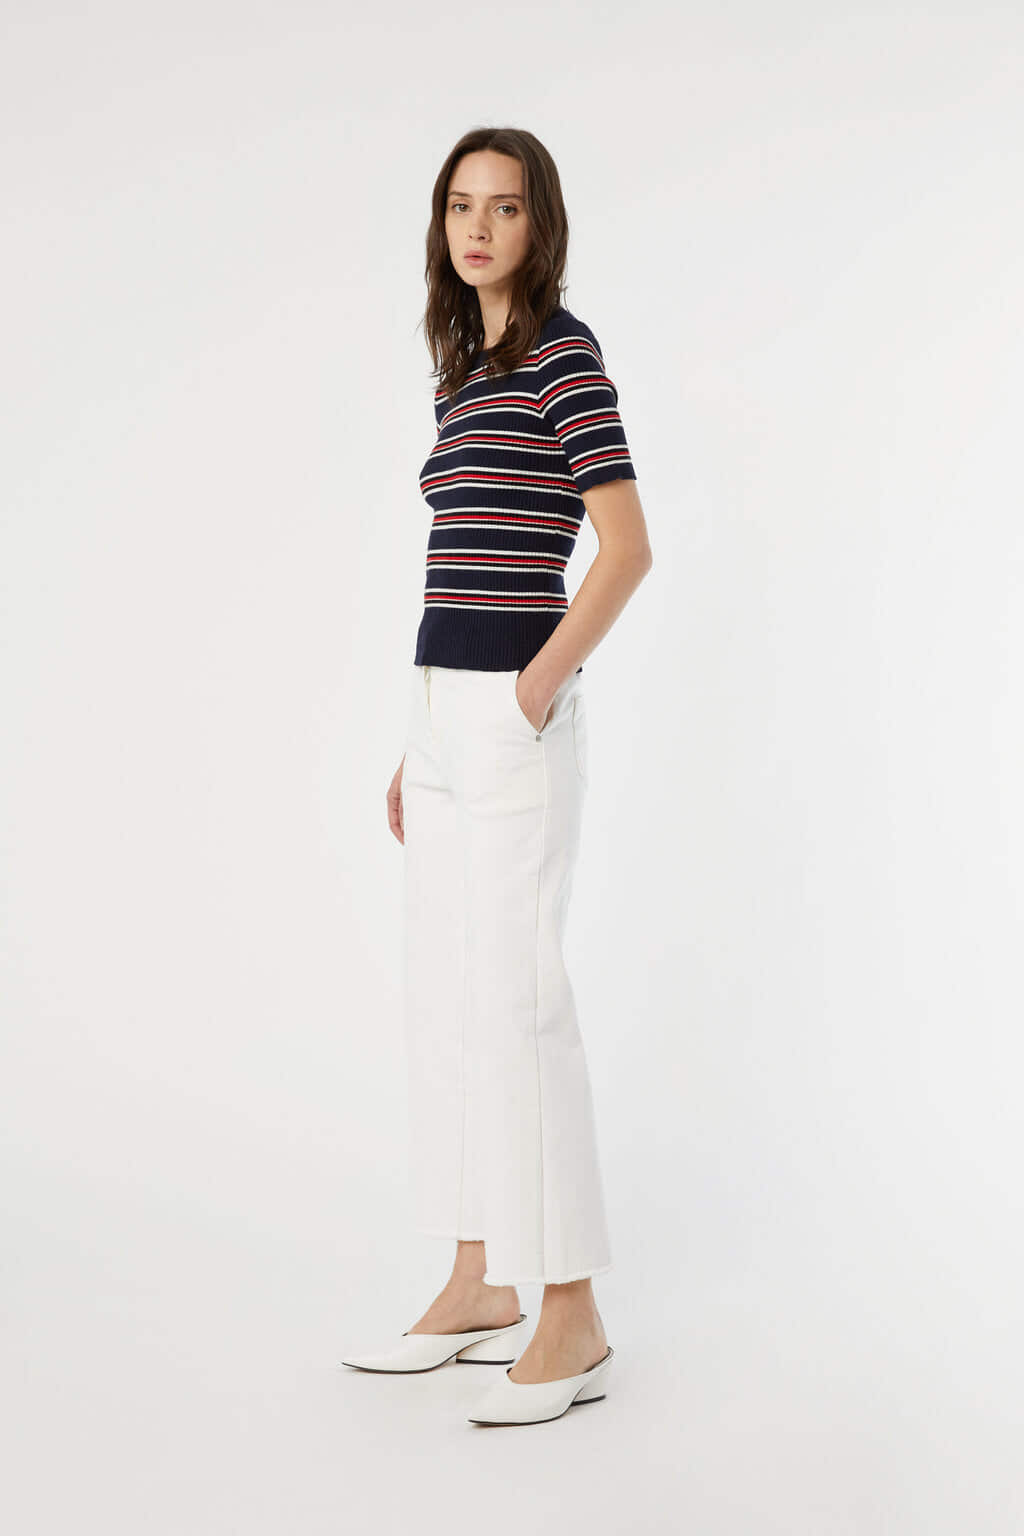 TShirt 3611 Red Blue Stripe 3